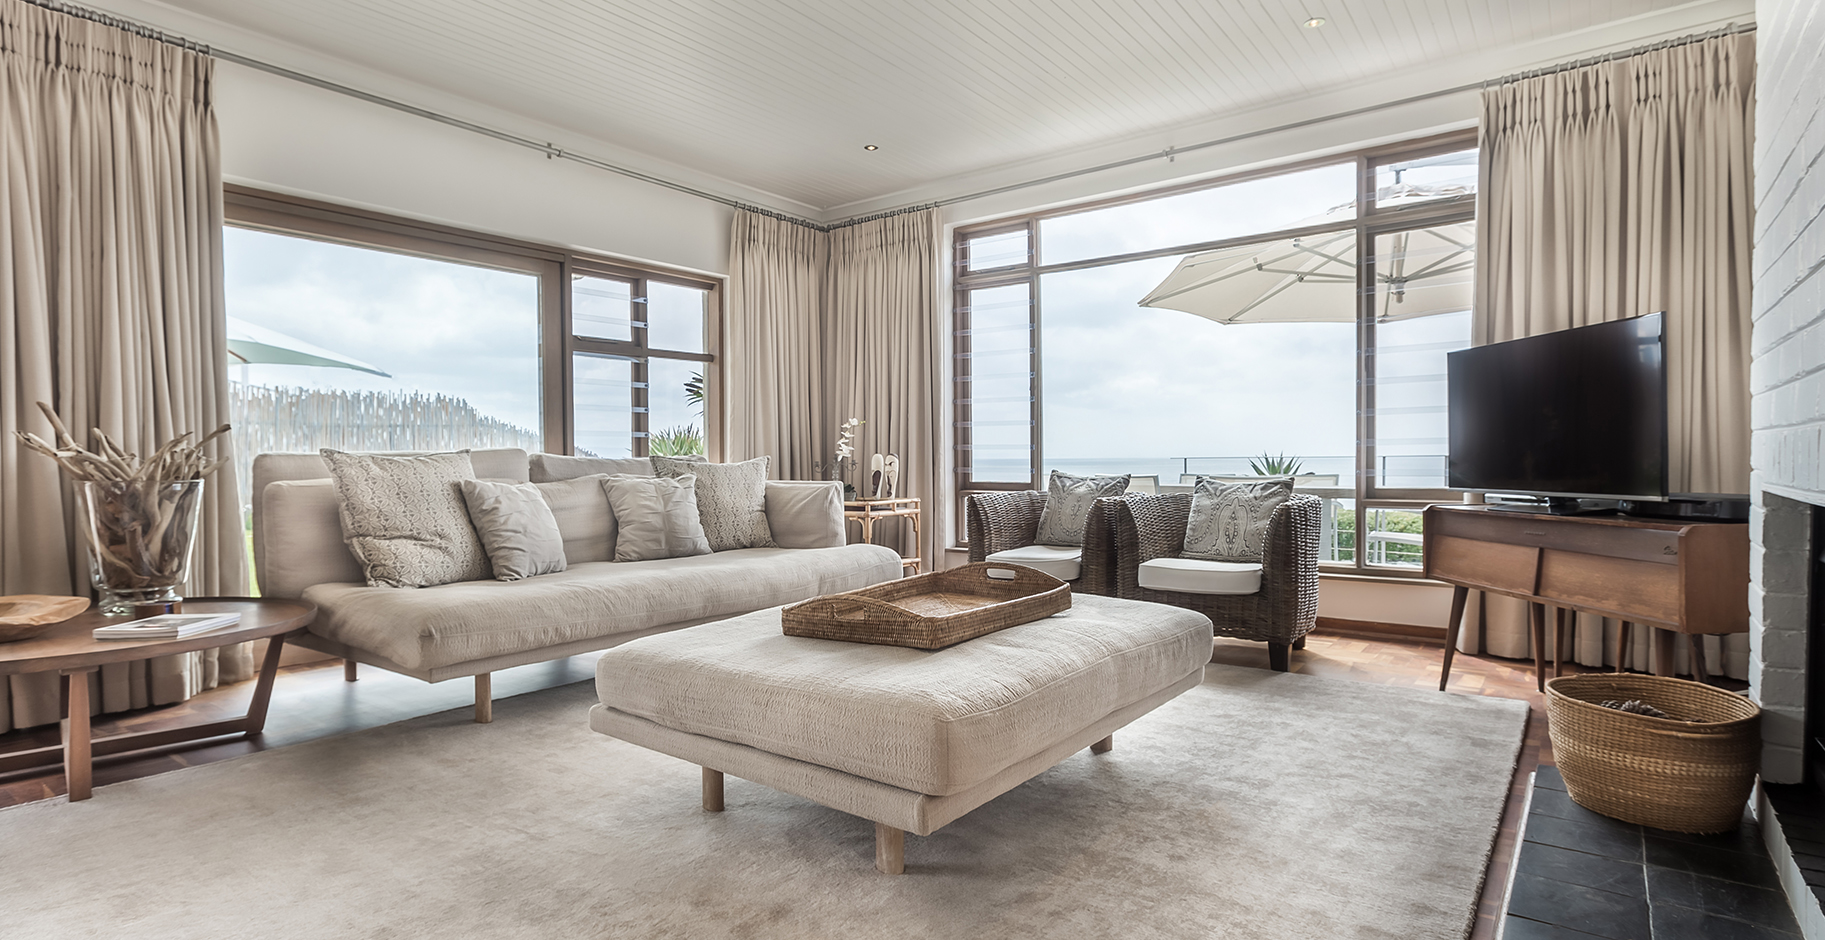 michelle brink, interior, photographer garden route, architectural photography, plettenberg bay, plett its a feeling, architect garden route, plett accommodation, house plans, accommodation, property agent